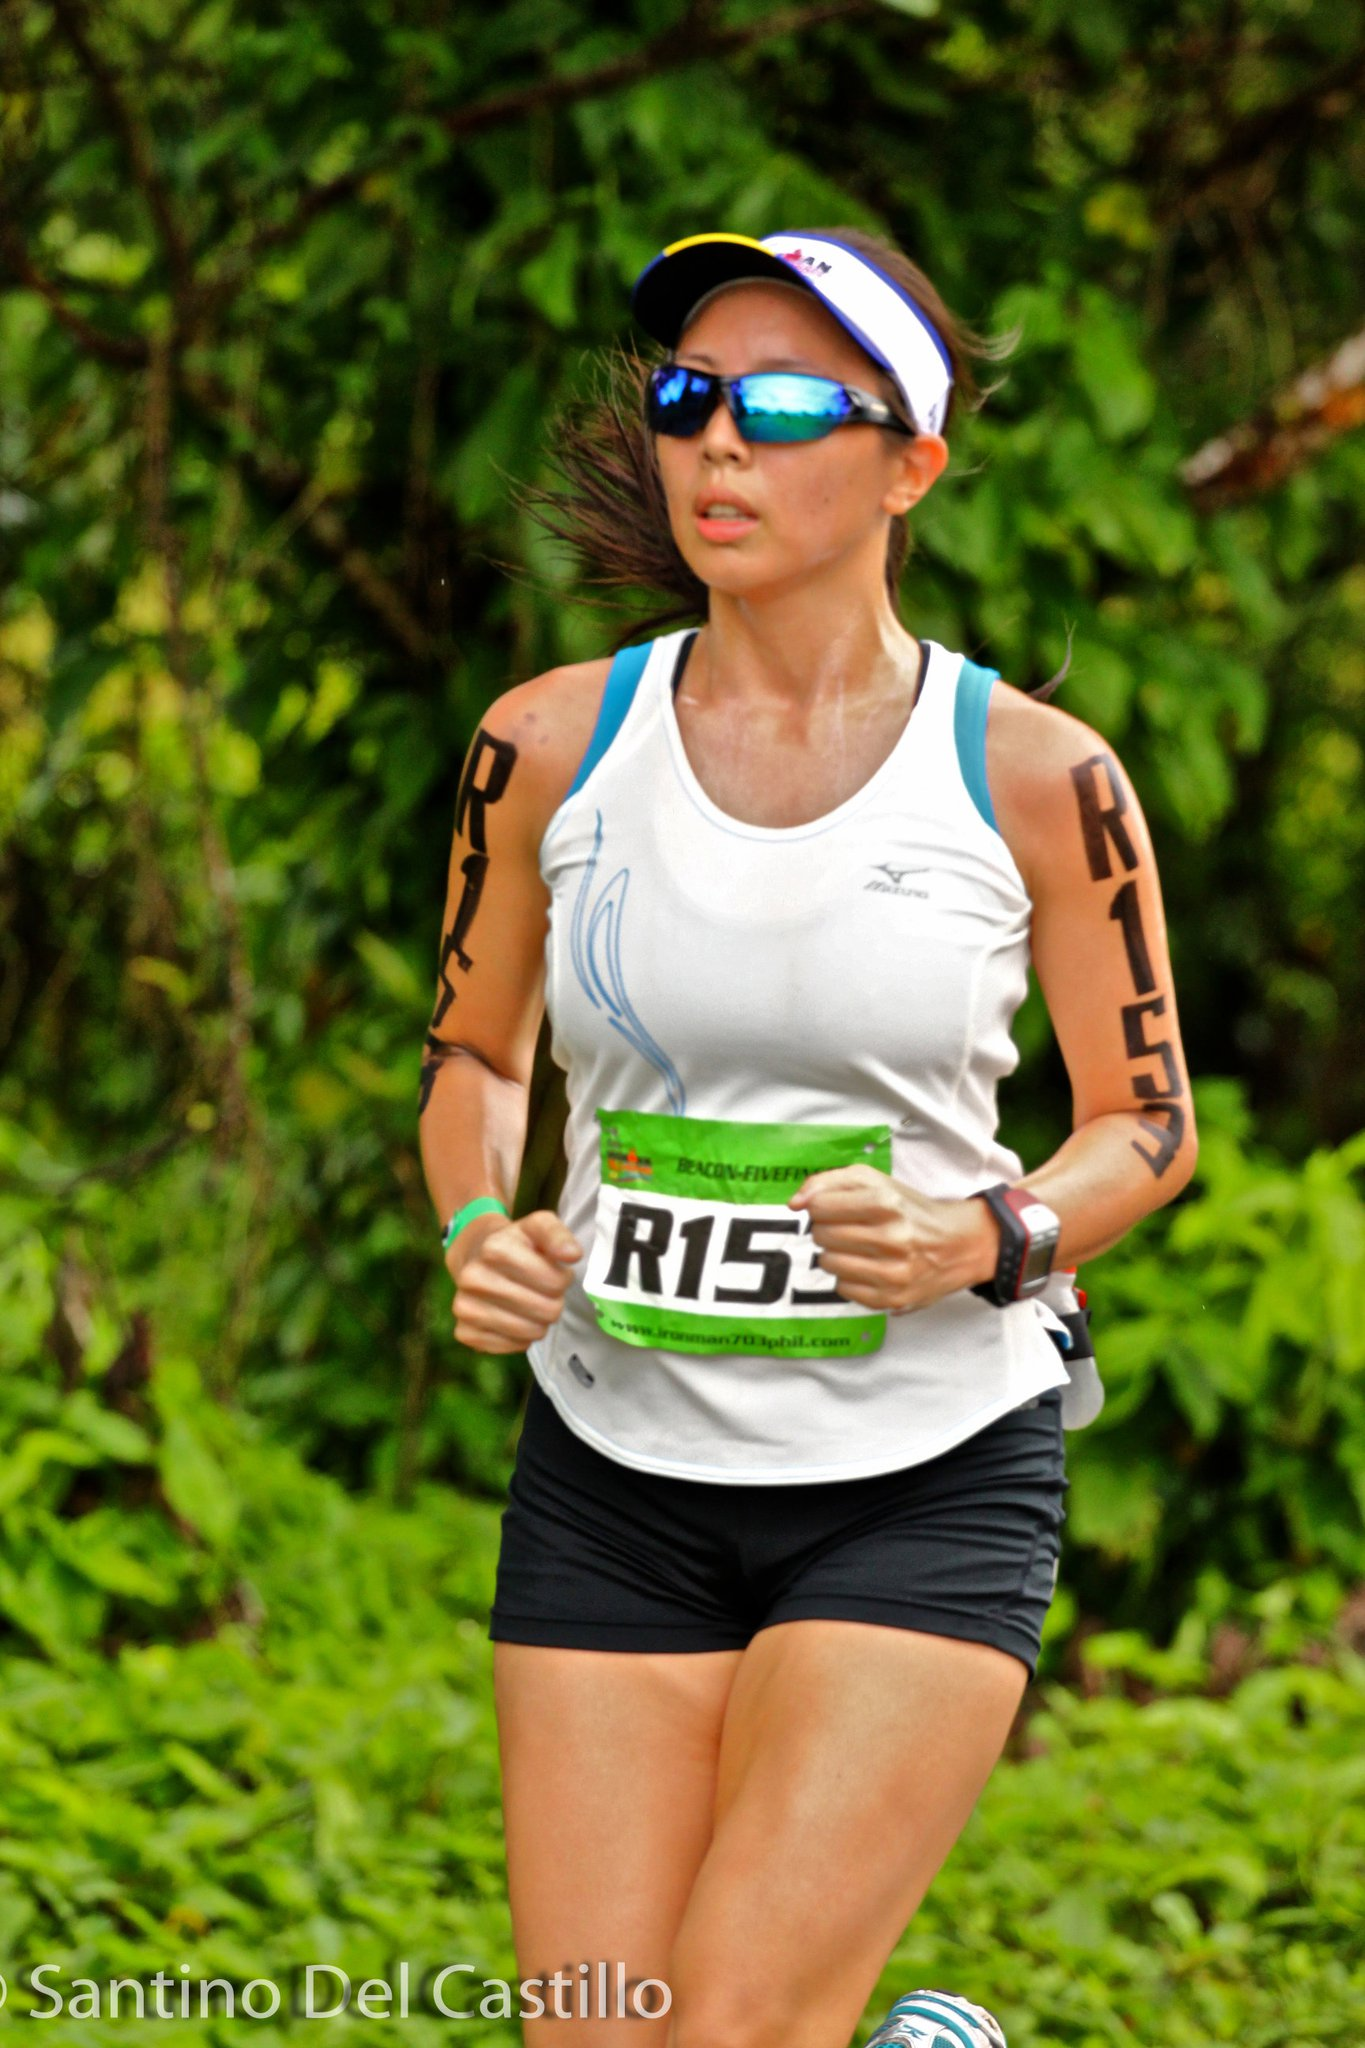 2011 Ironman 70.3: Ink-stained Run